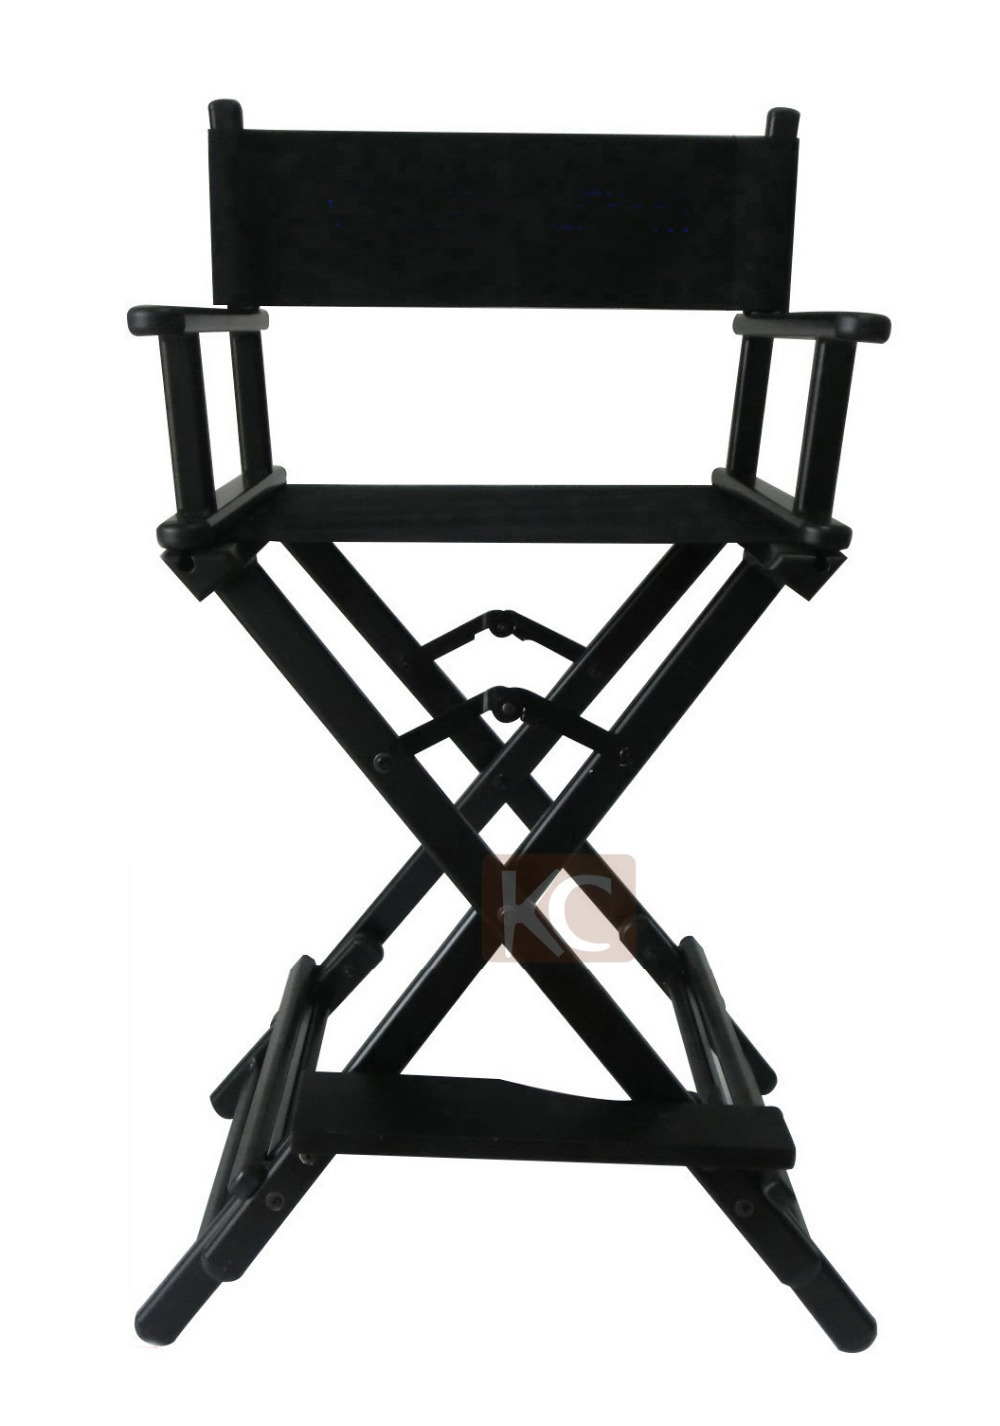 Portable makeup chair -  Folding Aluminum Director Chair Portable Makeup Chair Silver Black Color Available For Option